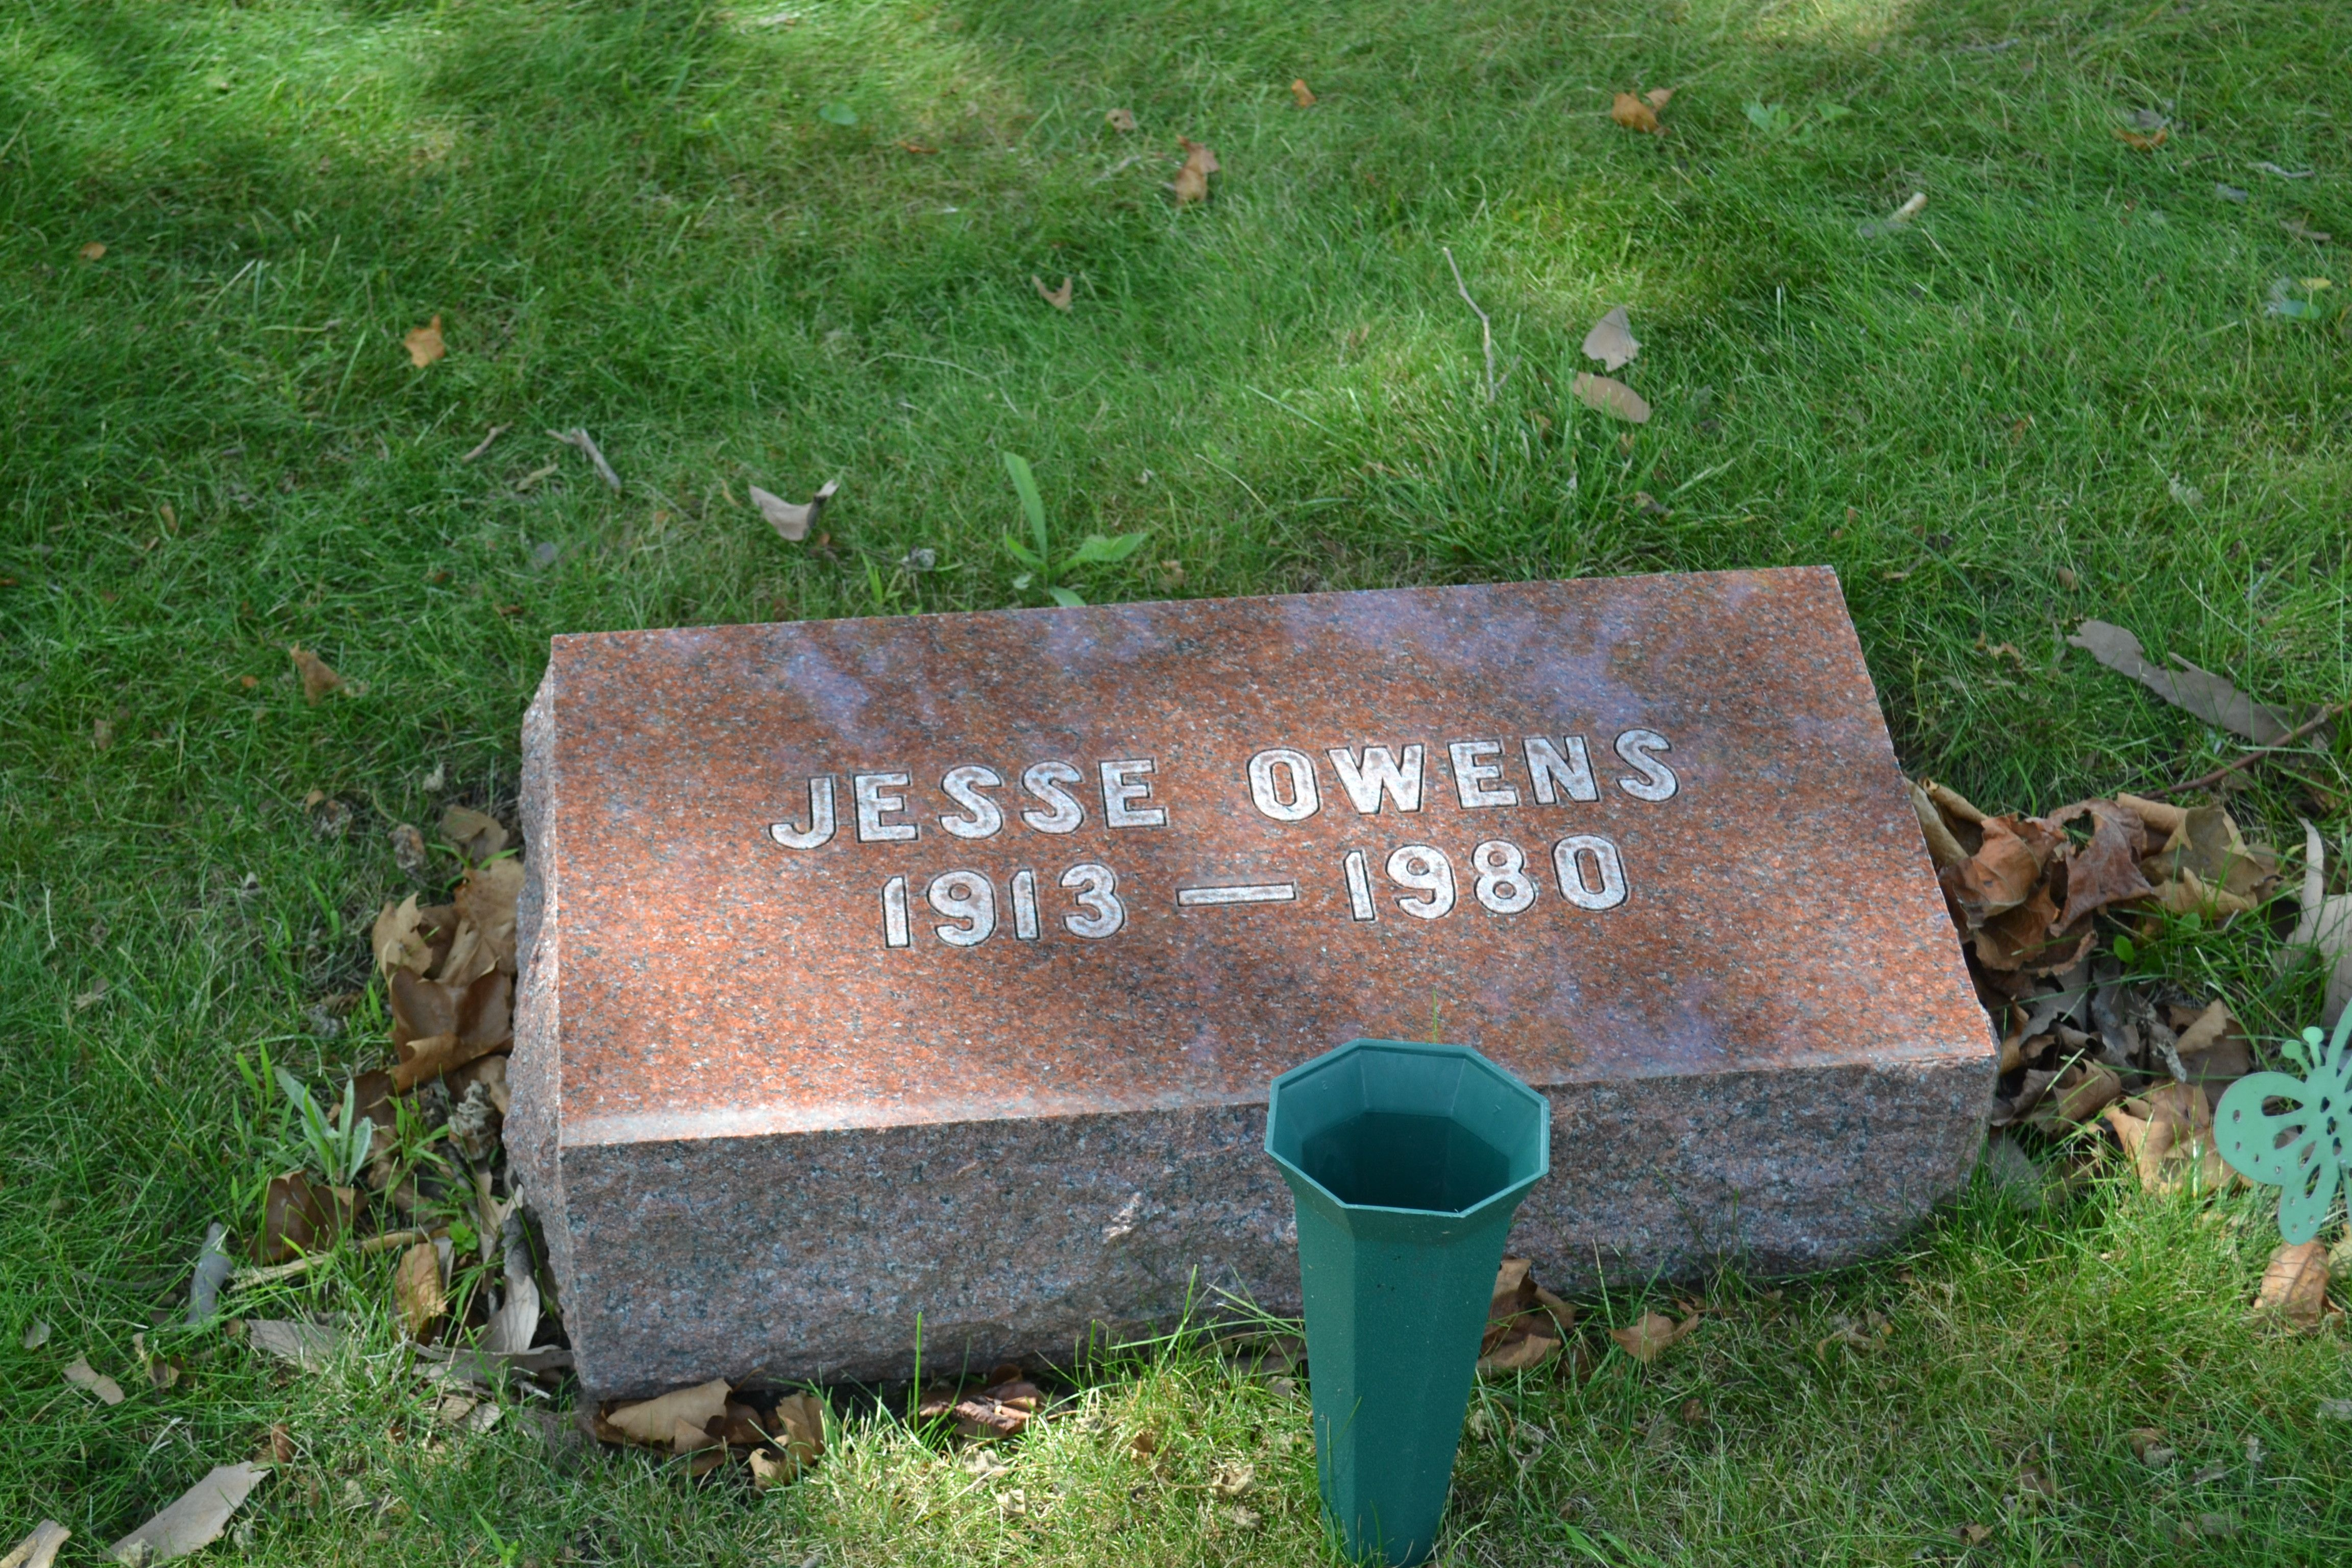 Jesse Owens Olympic Games Gold Medalist Athlete Civil Rights